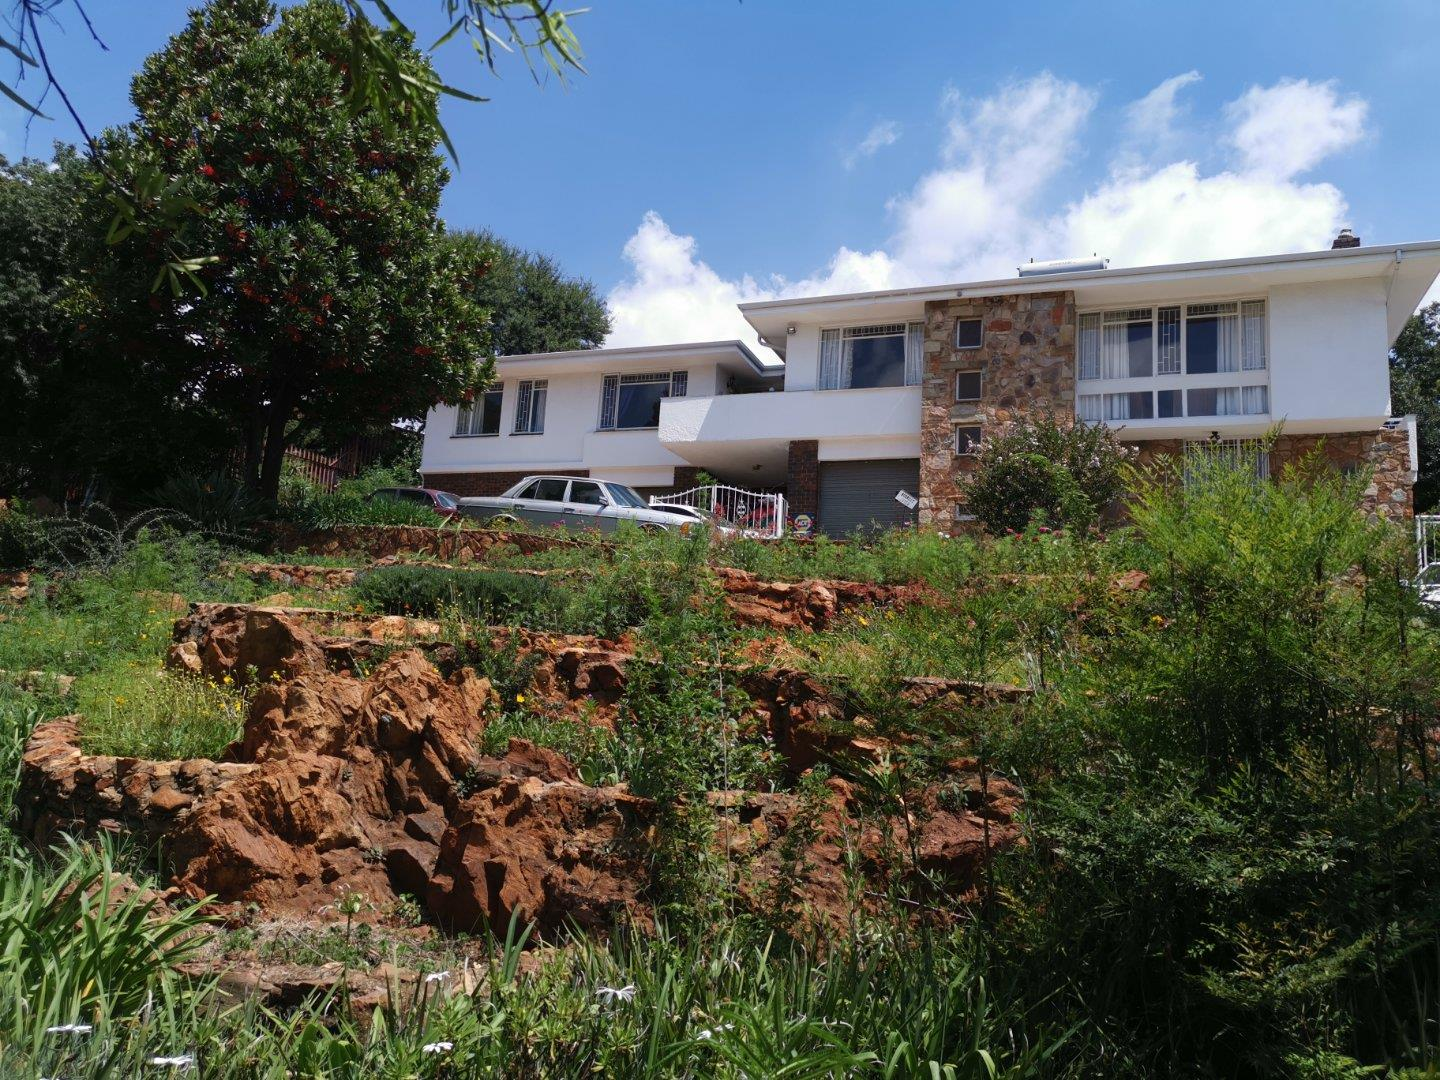 3 Bedroom House for Sale in Wilro Park, Roodepoort - Gauteng